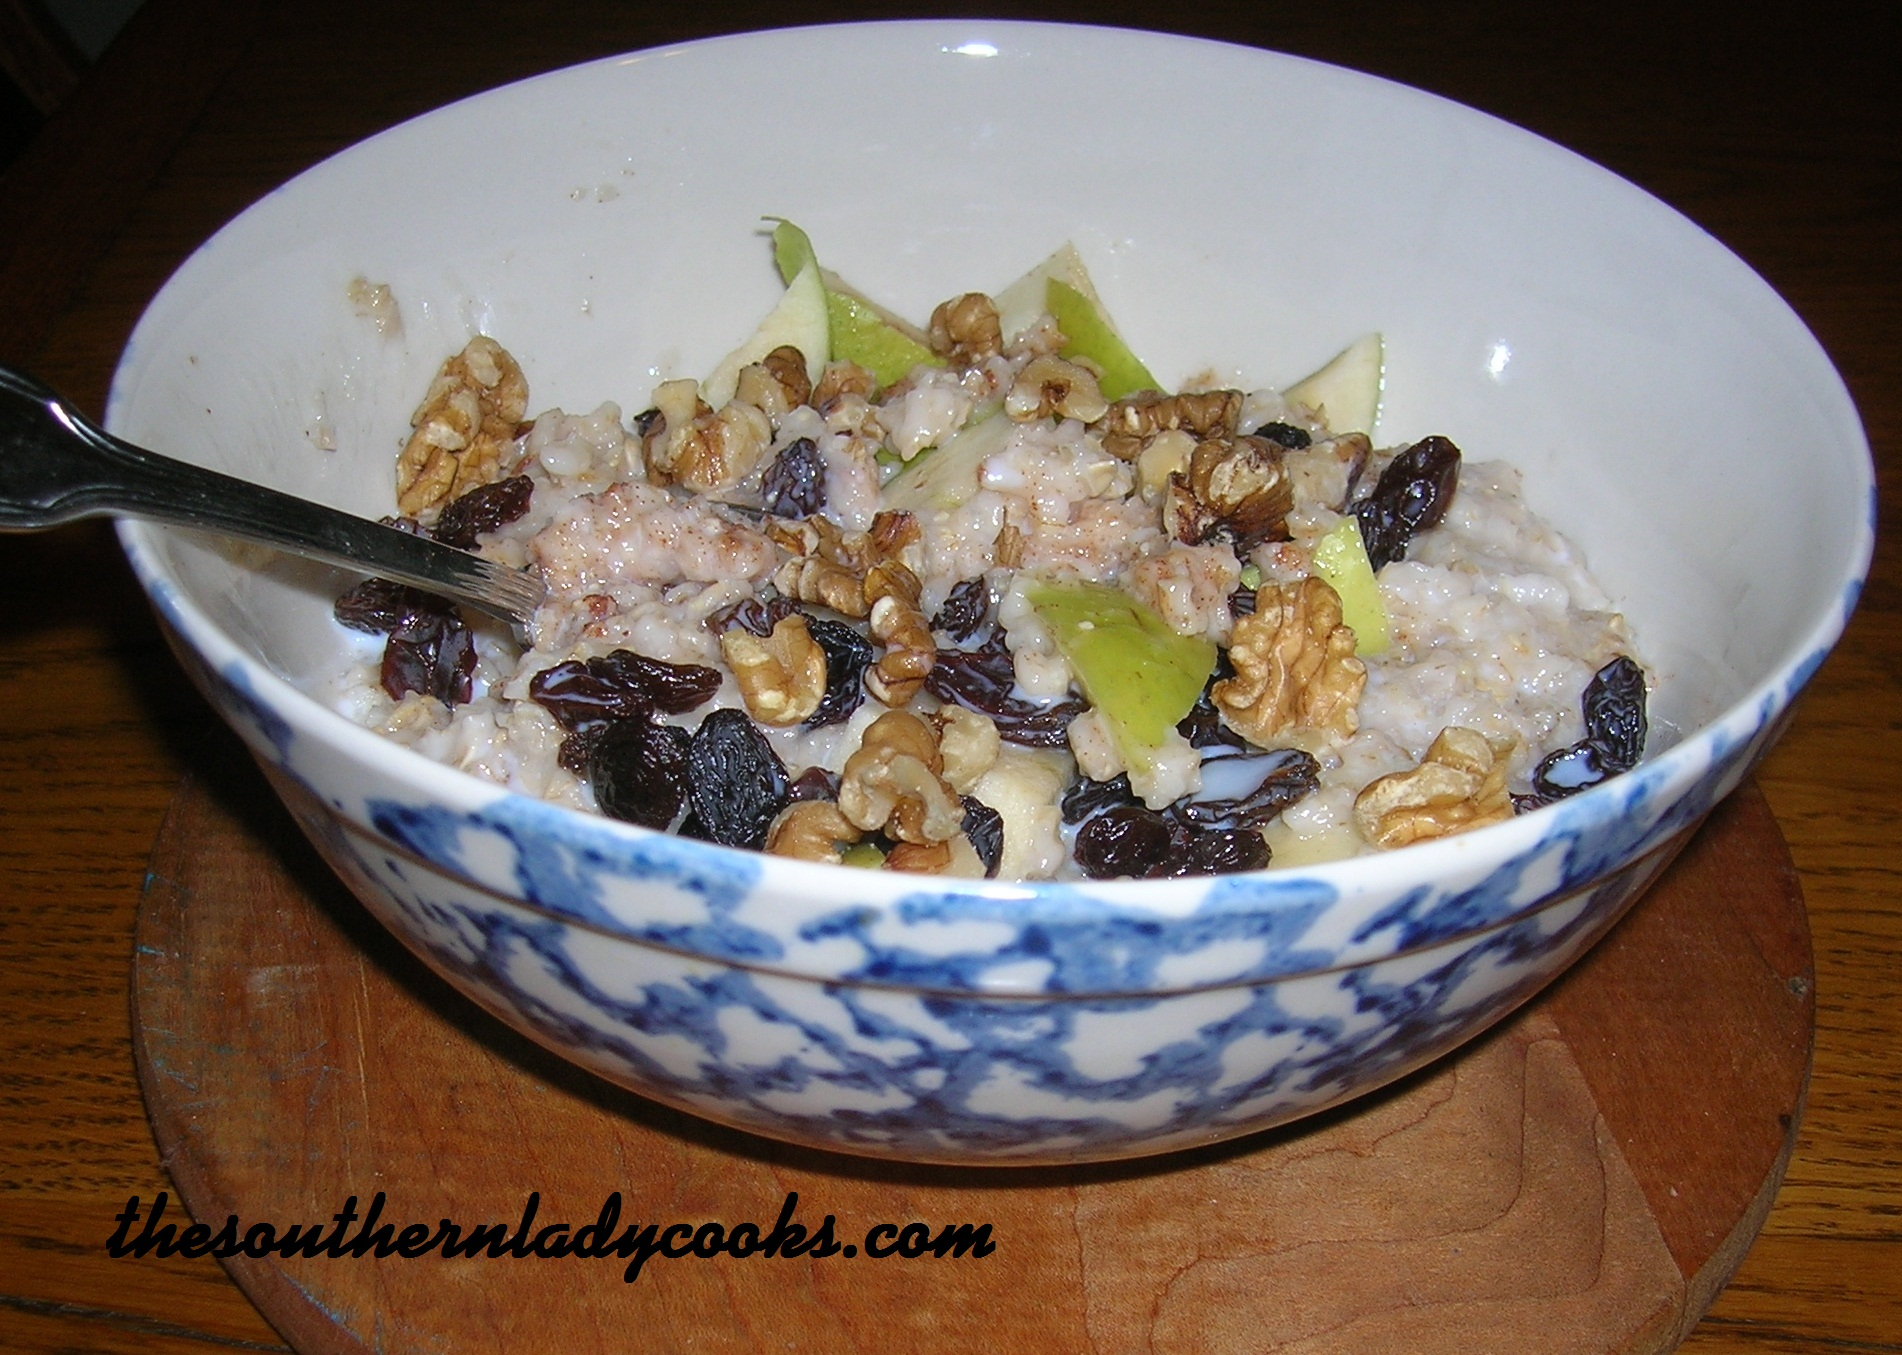 January - National Oatmeal Month